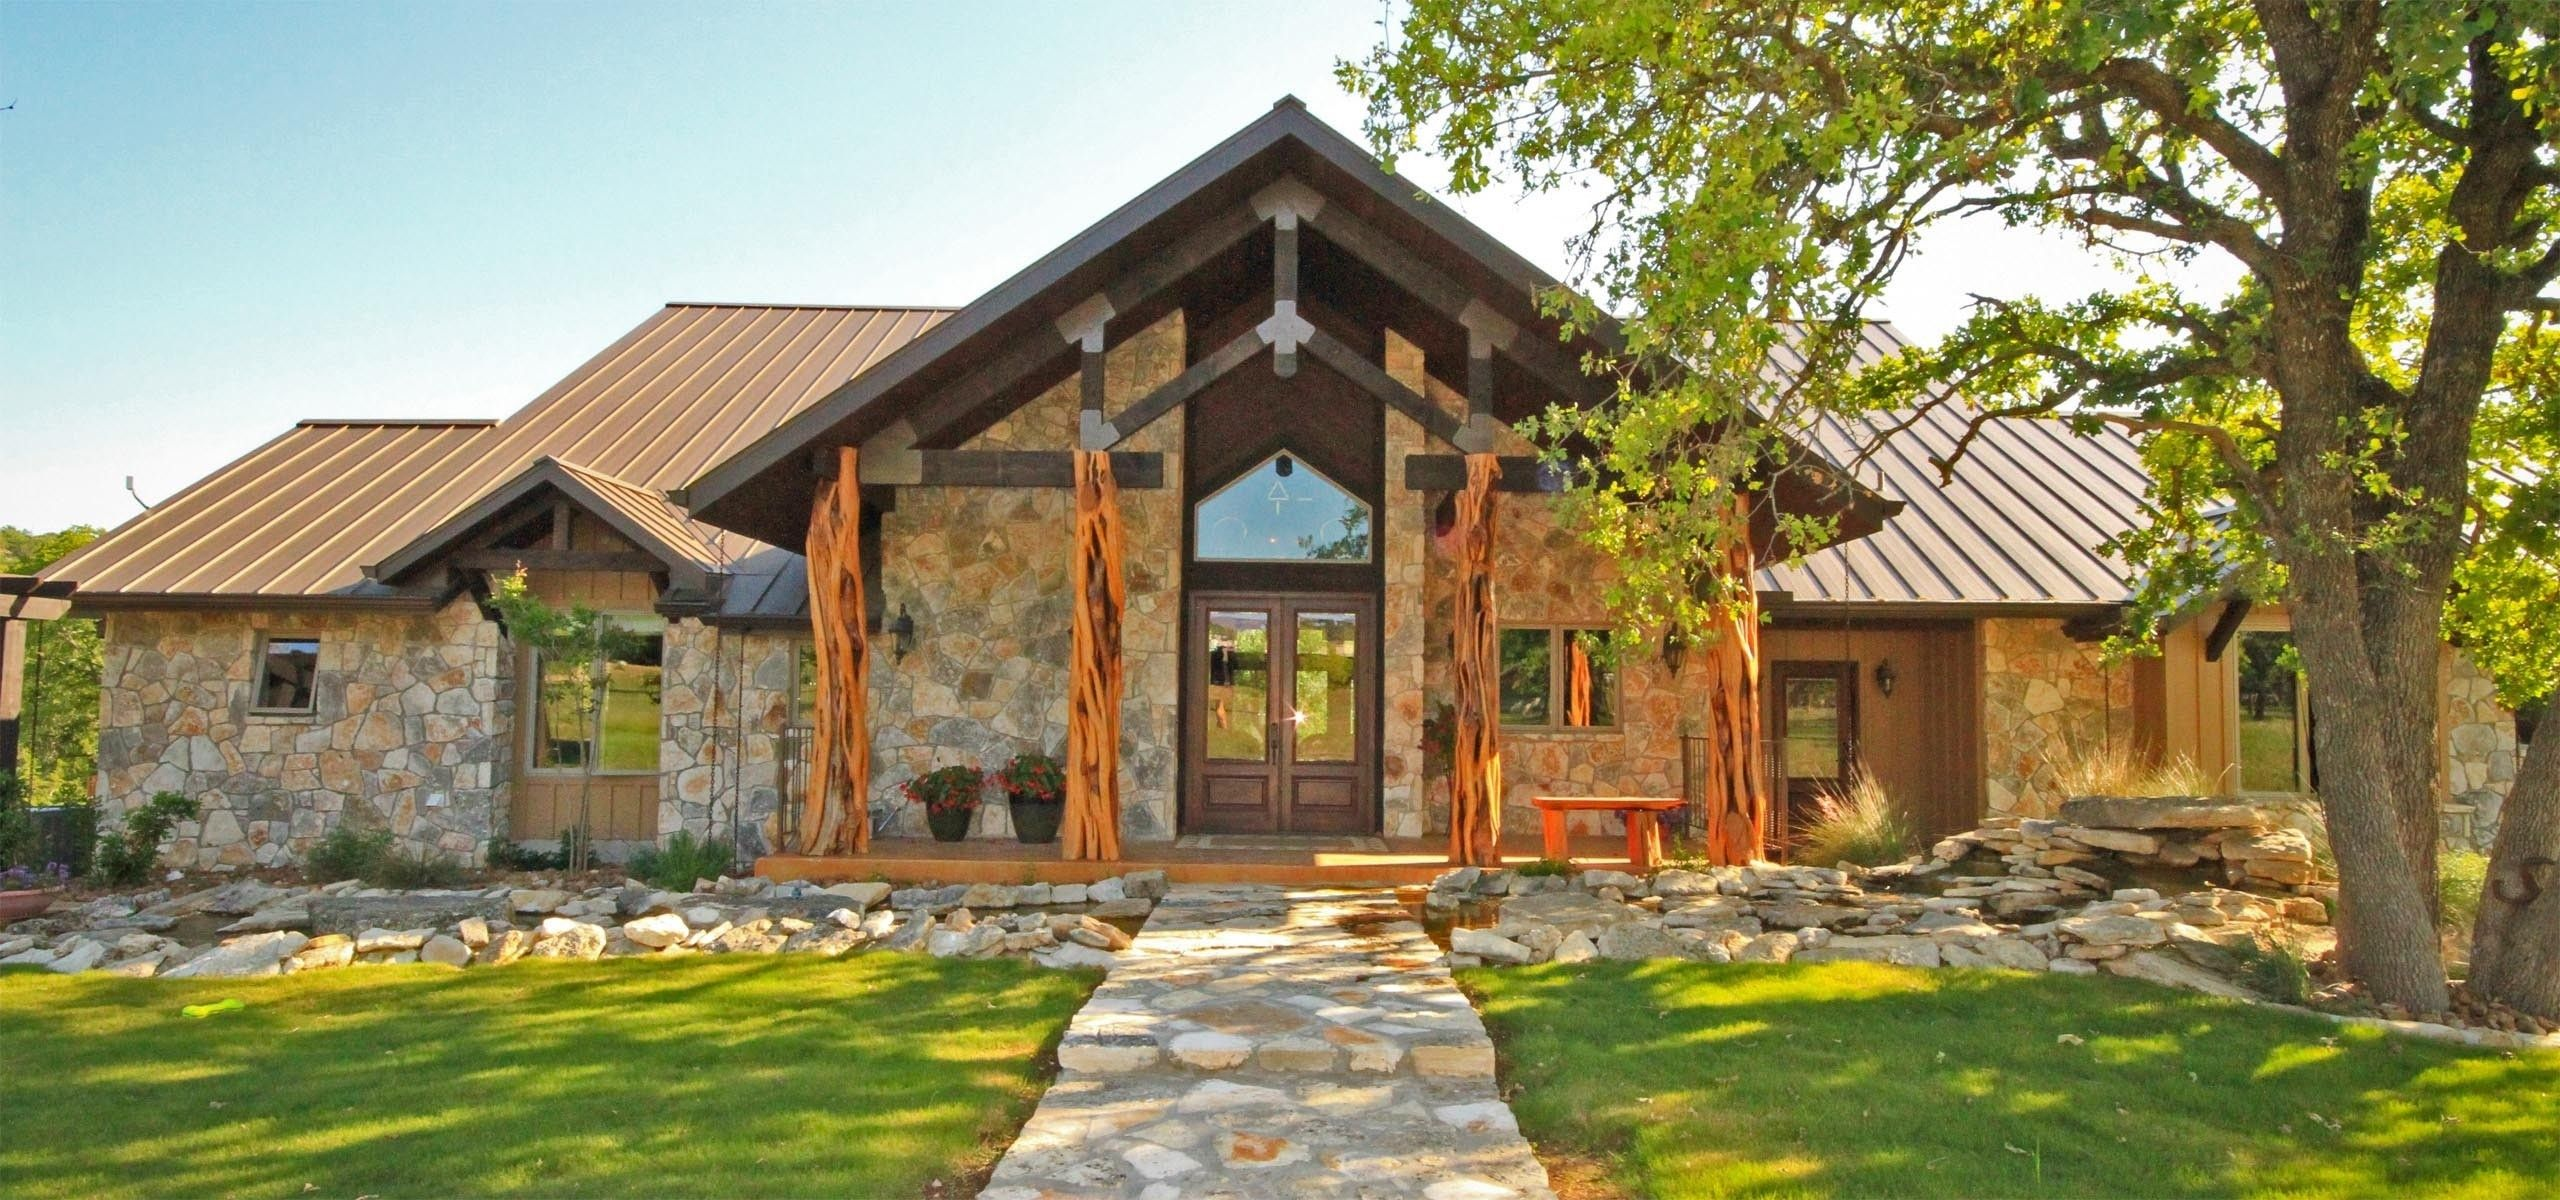 Image Result For Brick Home Plans With Wrap Around Porch Hill Country Homes Ranch House Designs Texas House Plans